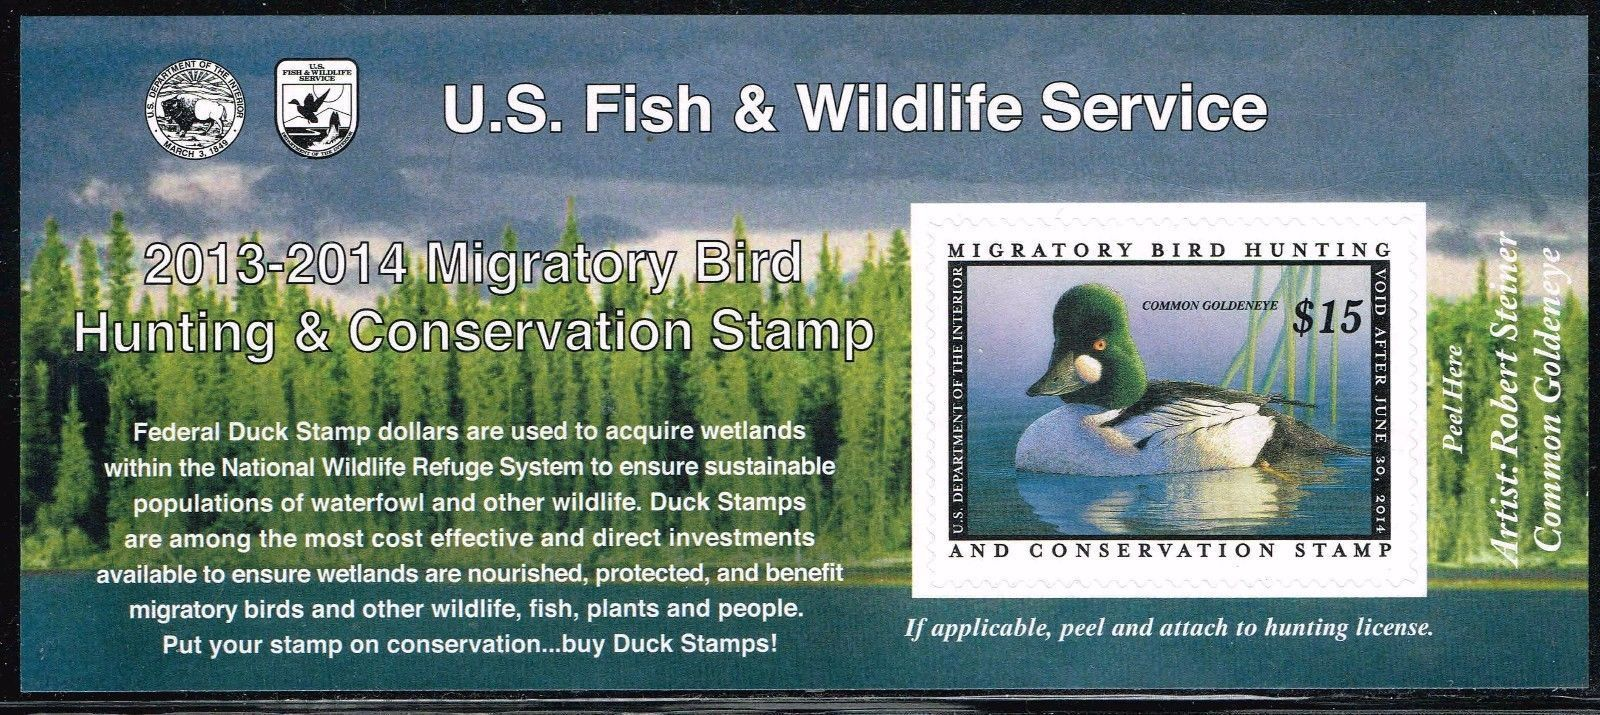 2013-2014 Federal Duck Stamp